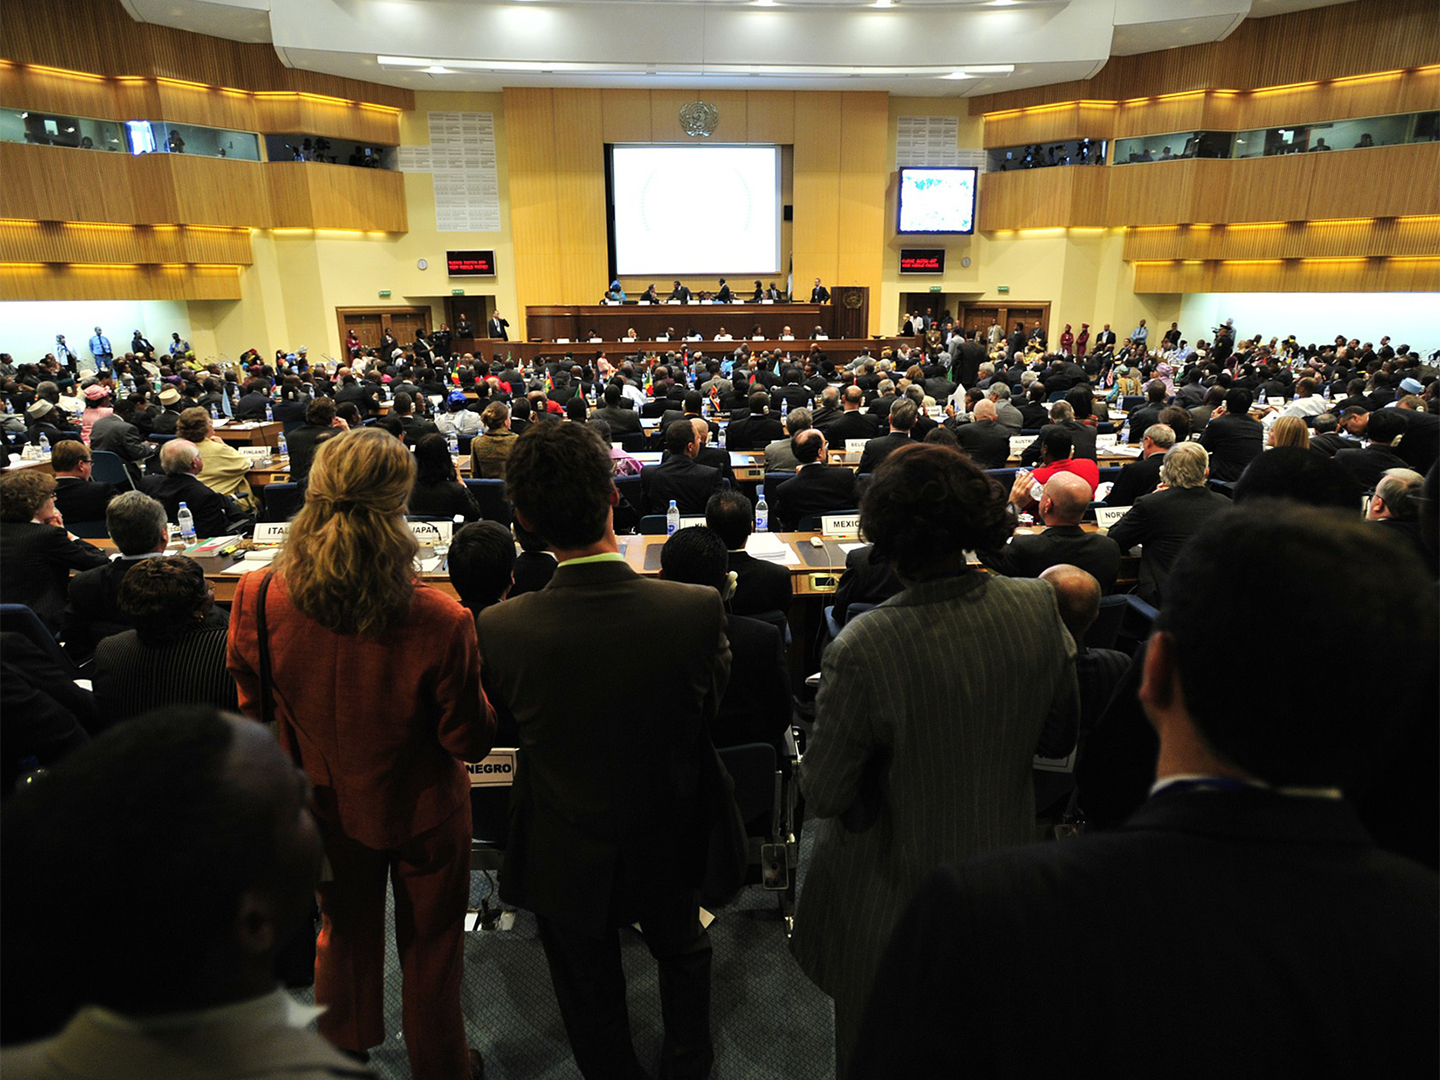 International representatives meet in a large conference hall